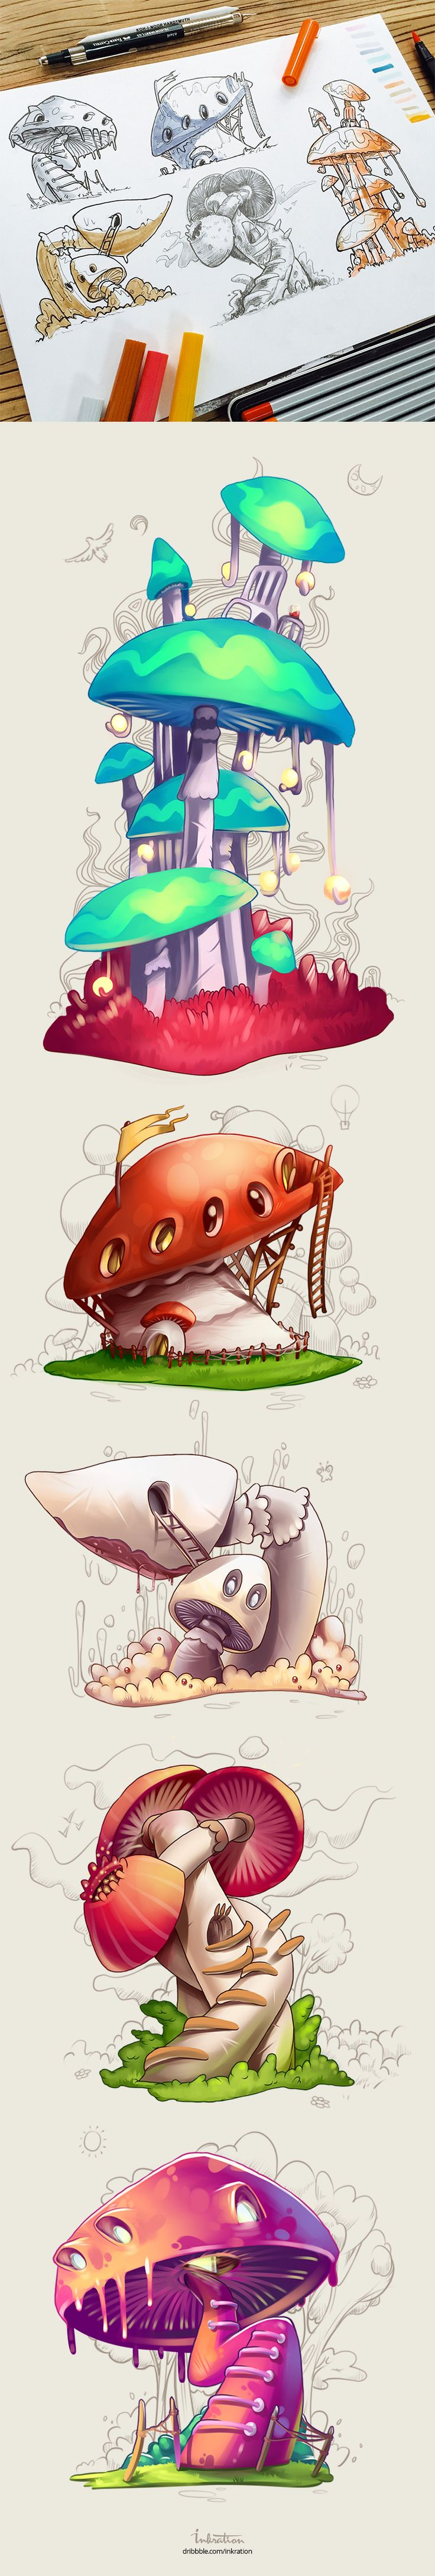 New concepts for indie-game are already here. Hope you like this mushroom-like houses and chose one for yourself :)